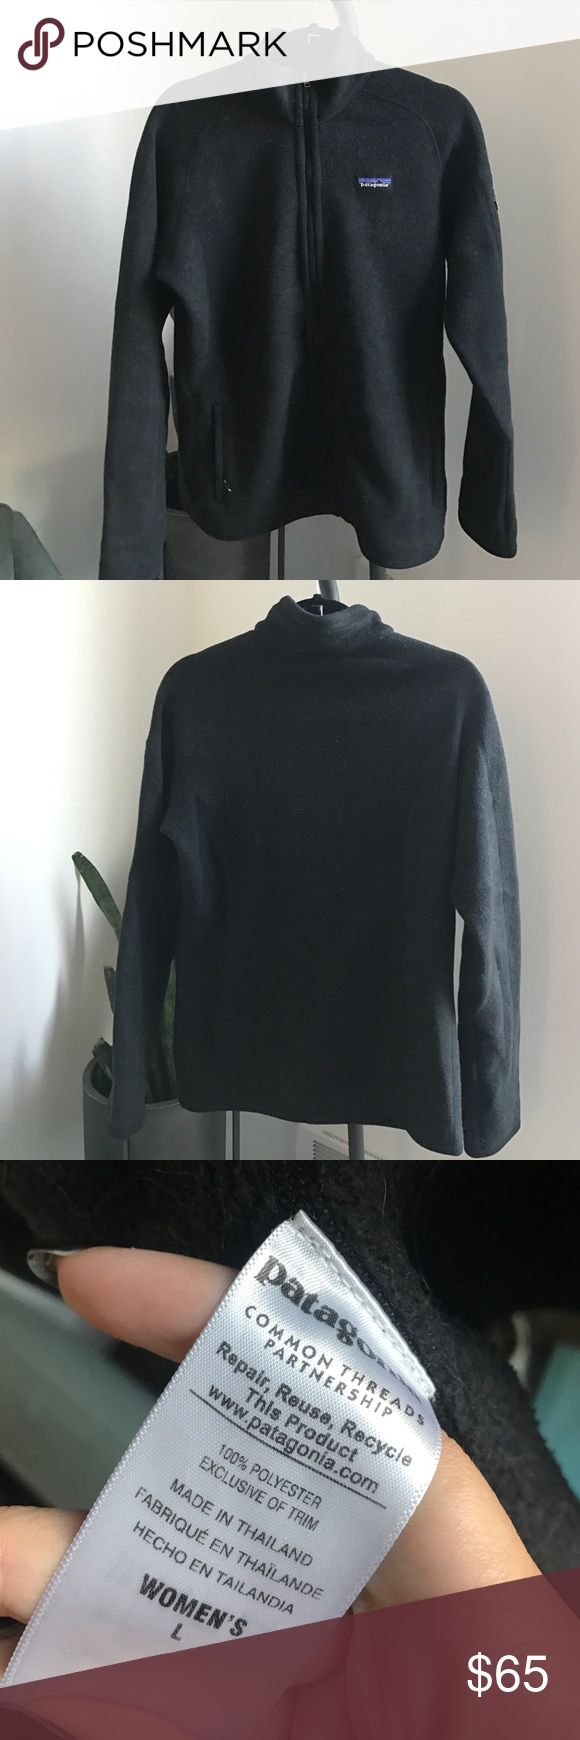 Patagonia fleece jacket Patagonia fleece jacket with inside pockets and zipped side pockets on the front Patagonia Jackets & Coats